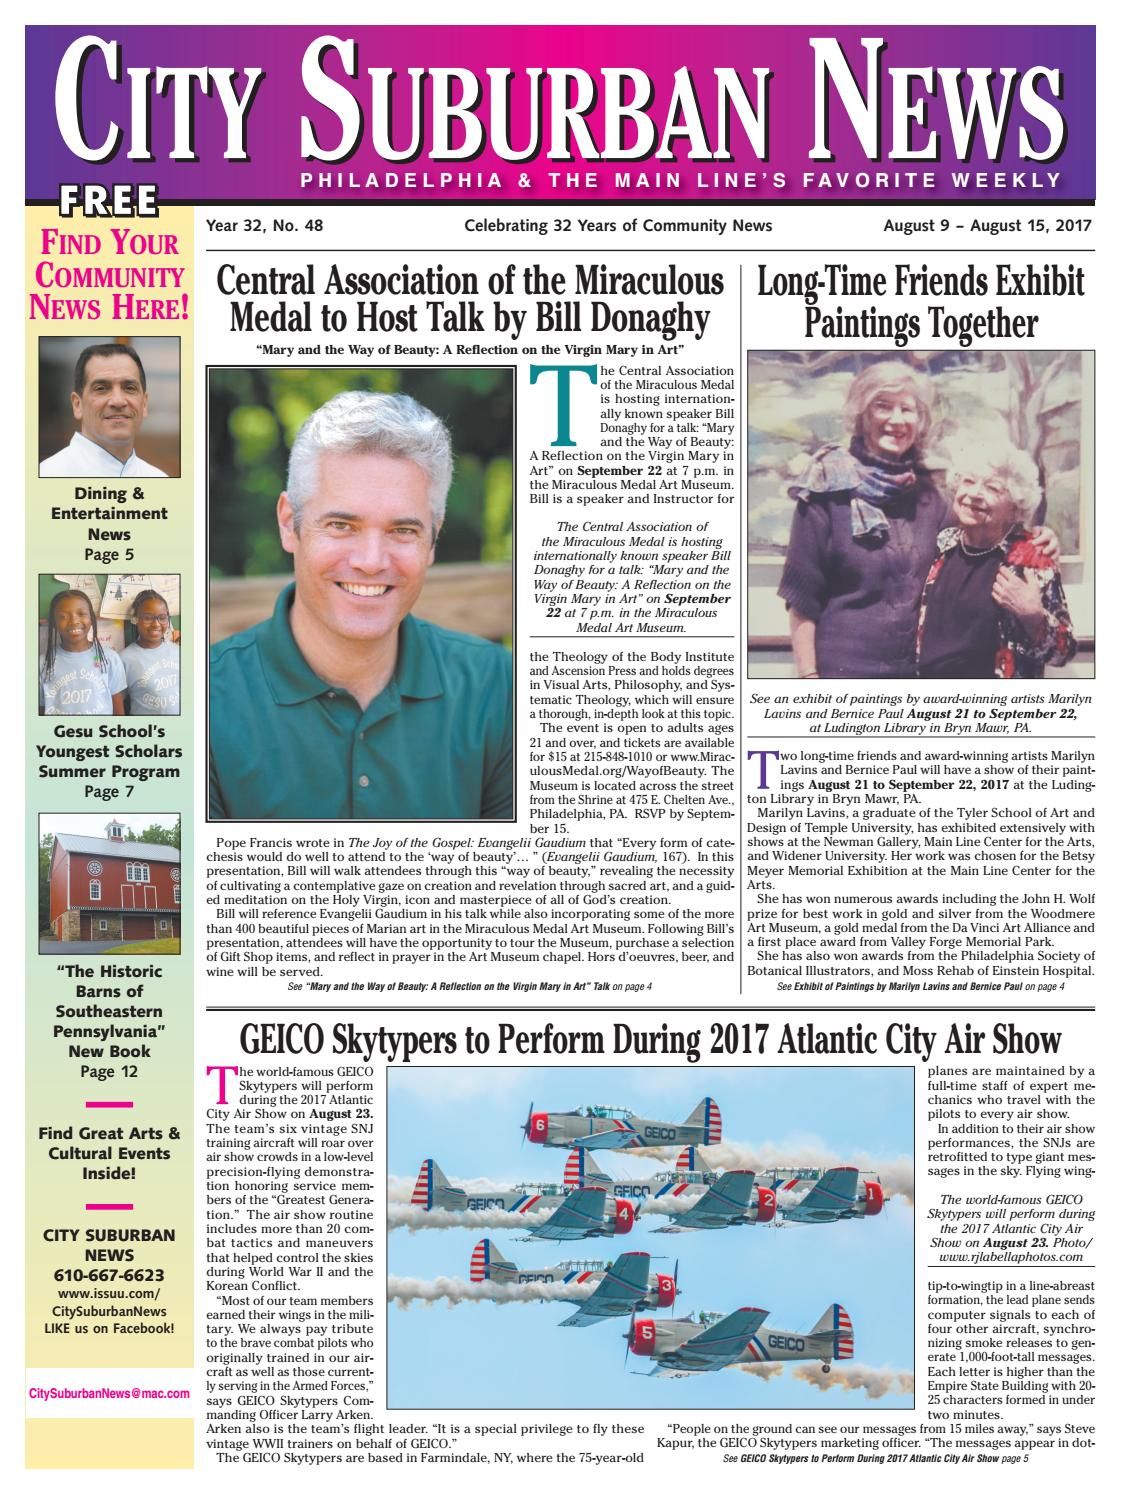 City Suburban News 8917 Issue By City Suburban News Issuu